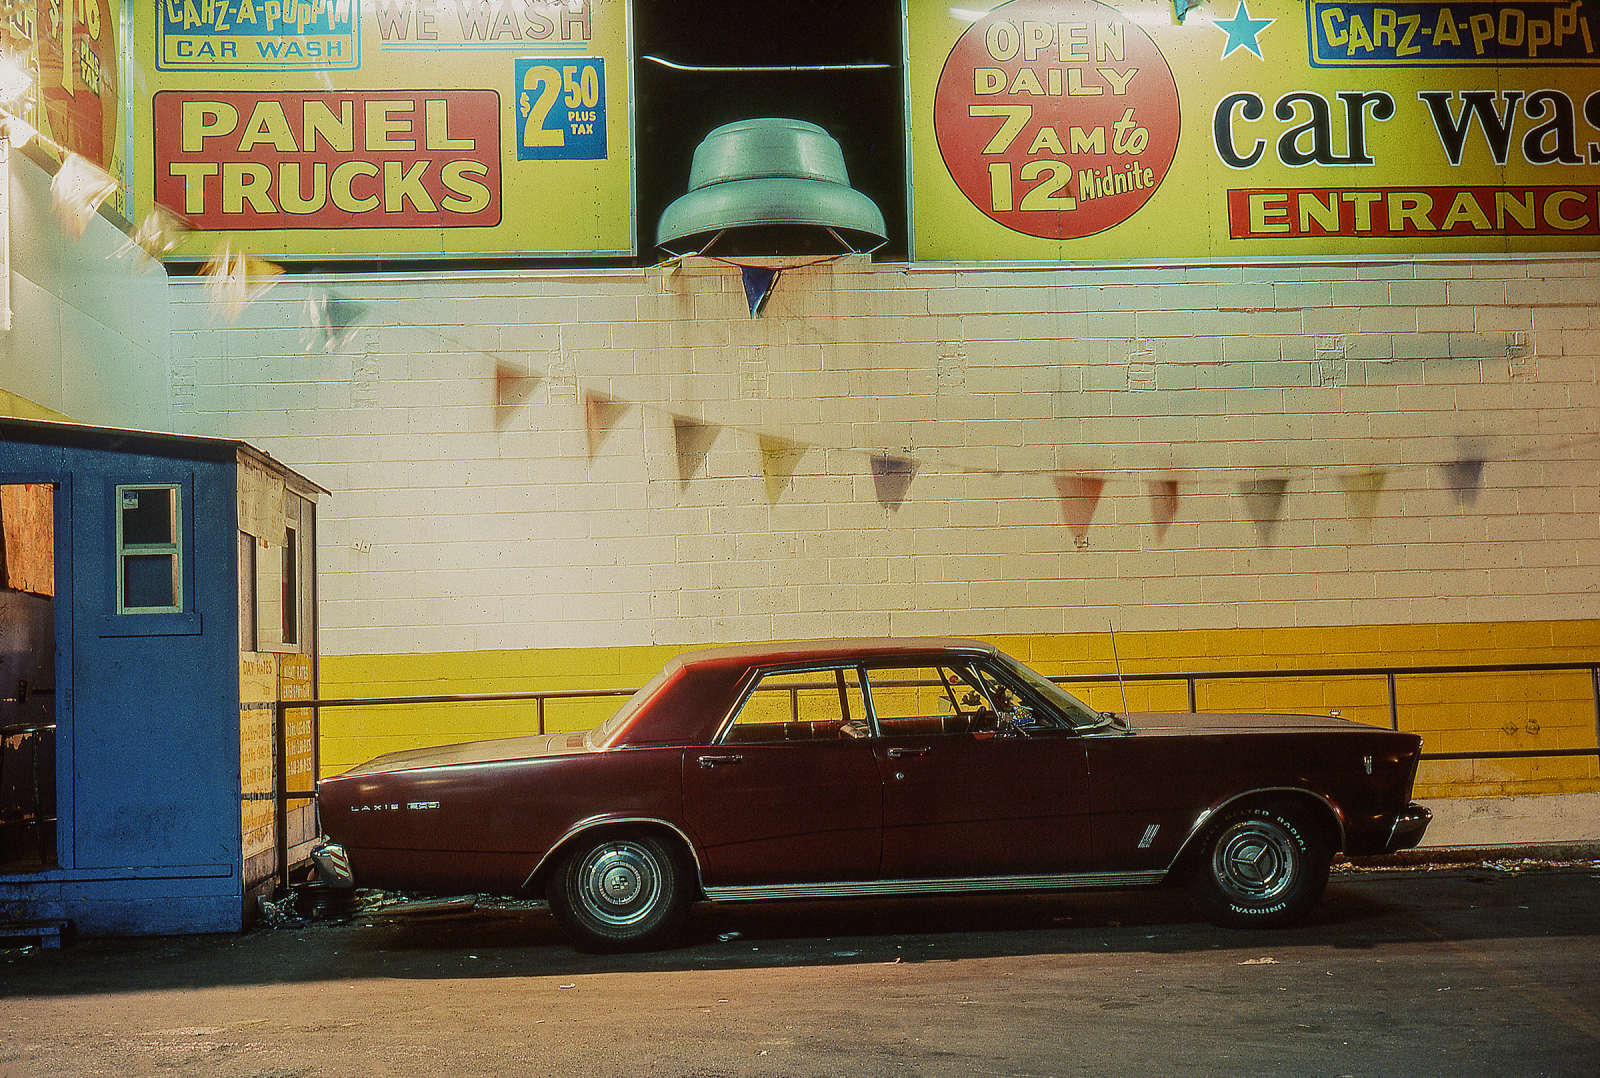 Carz-A-Poppin, Ford Galaxie 500 (1966), Houston and Broadway, 1976